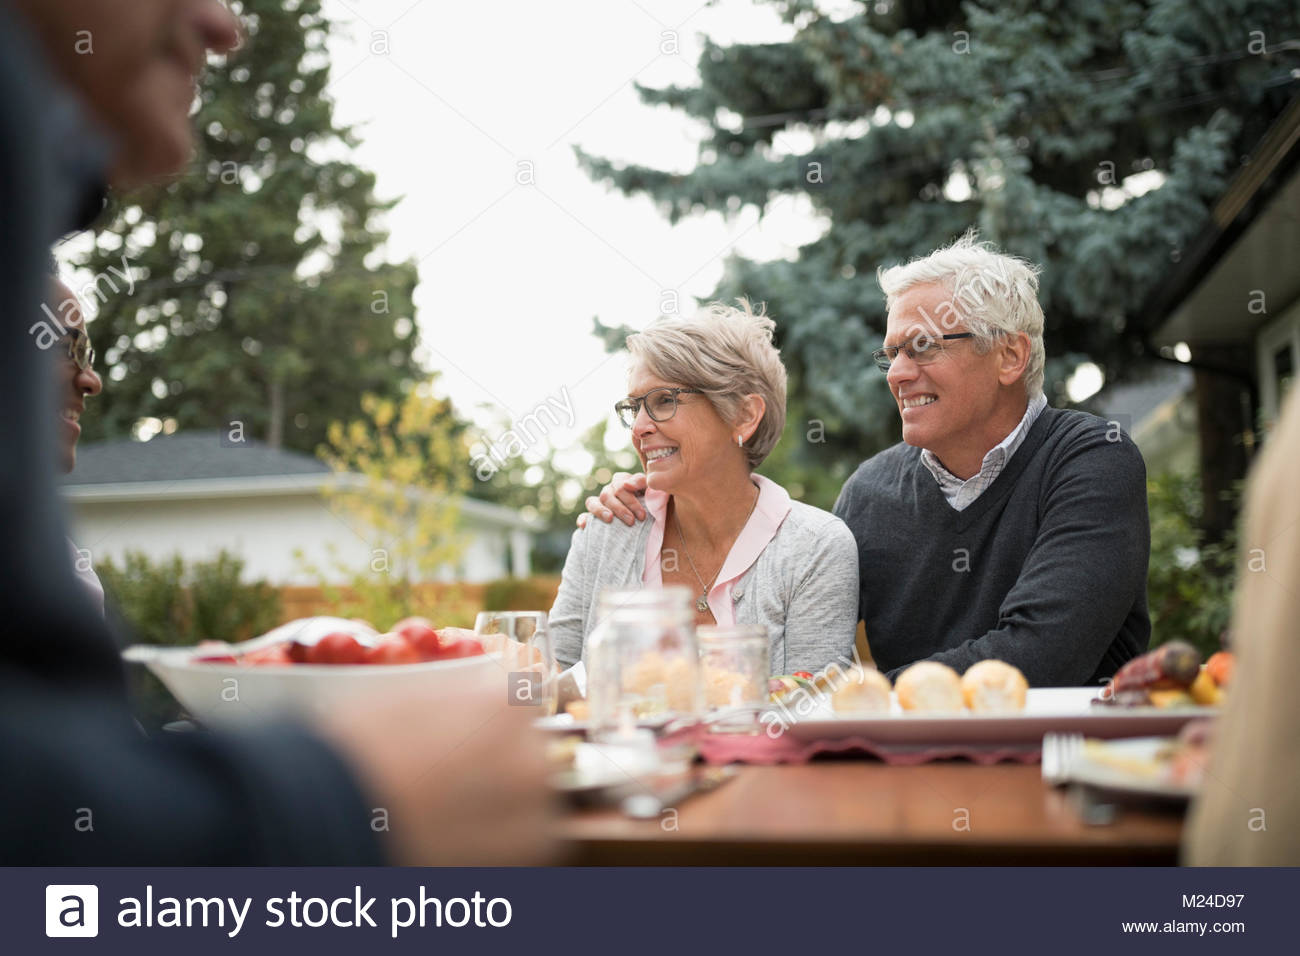 Smiling senior couple enjoying garden party lunch at patio table - Stock Image